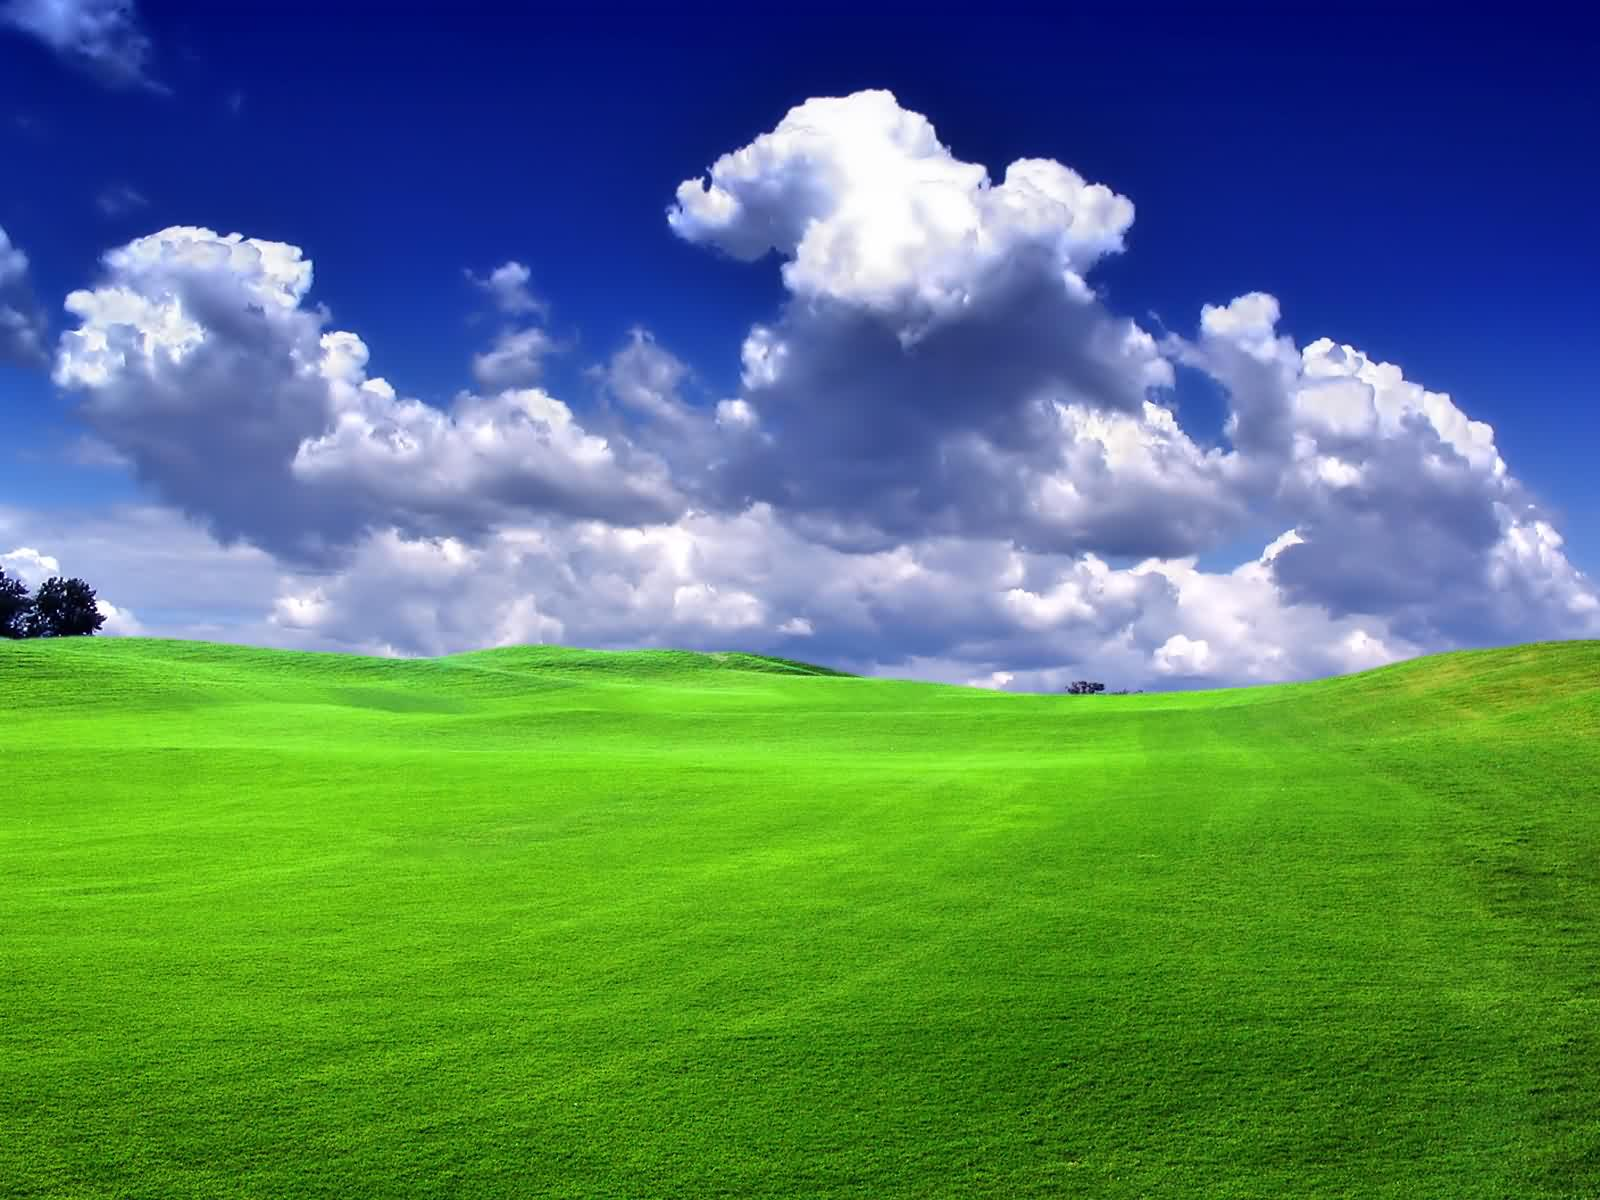 HD Wallpapers of Windows XP | HD Wallpapers